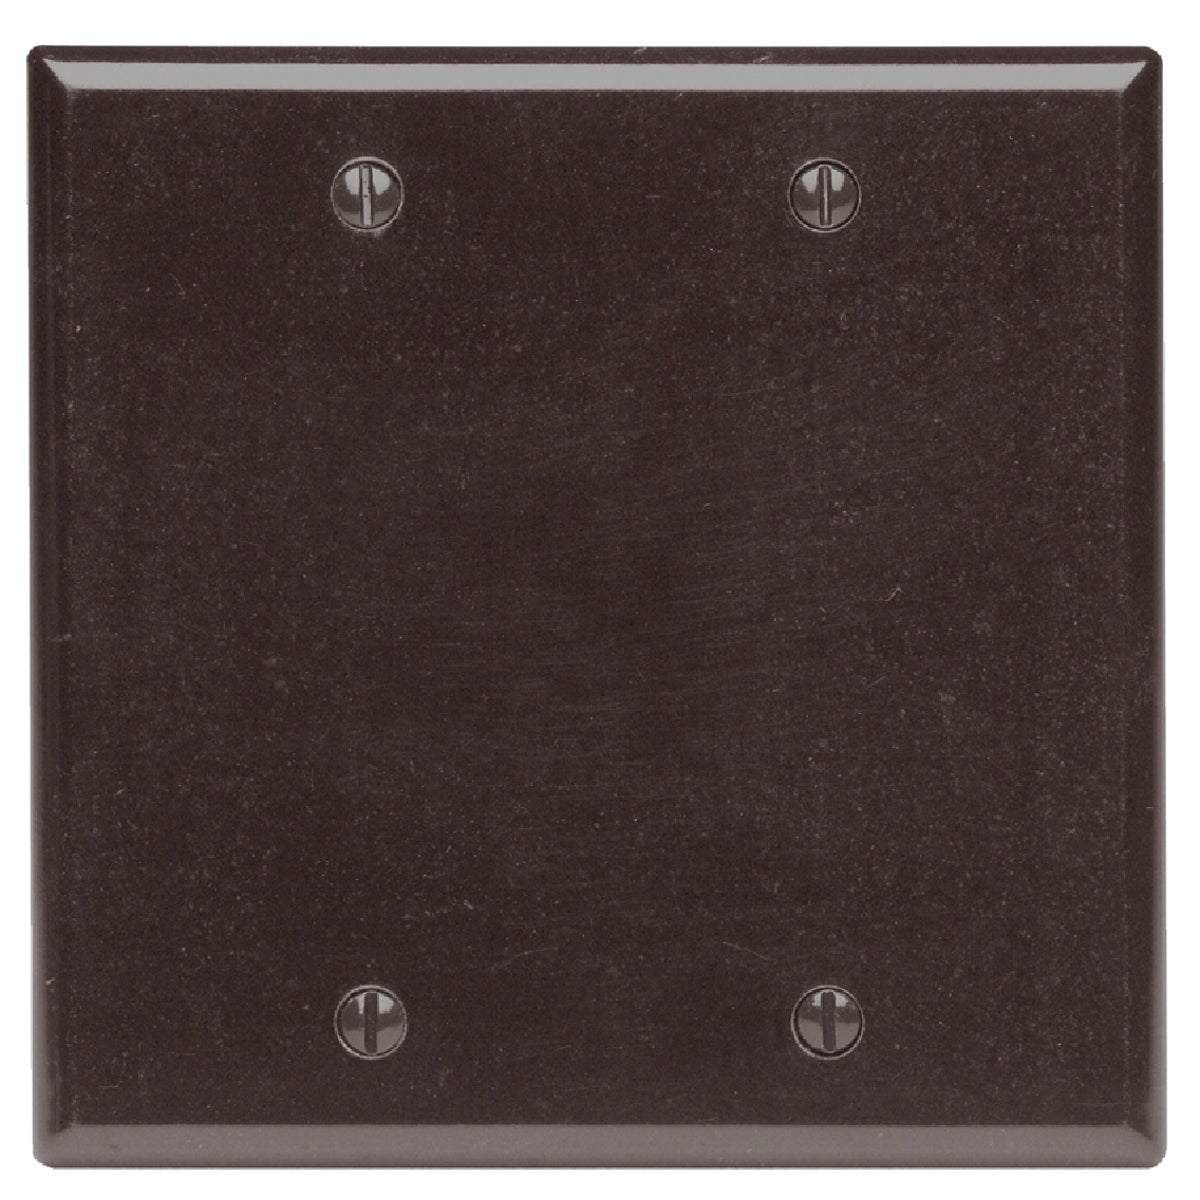 BRN BLANK WALL PLATE - 85025 by Leviton Mfg Co